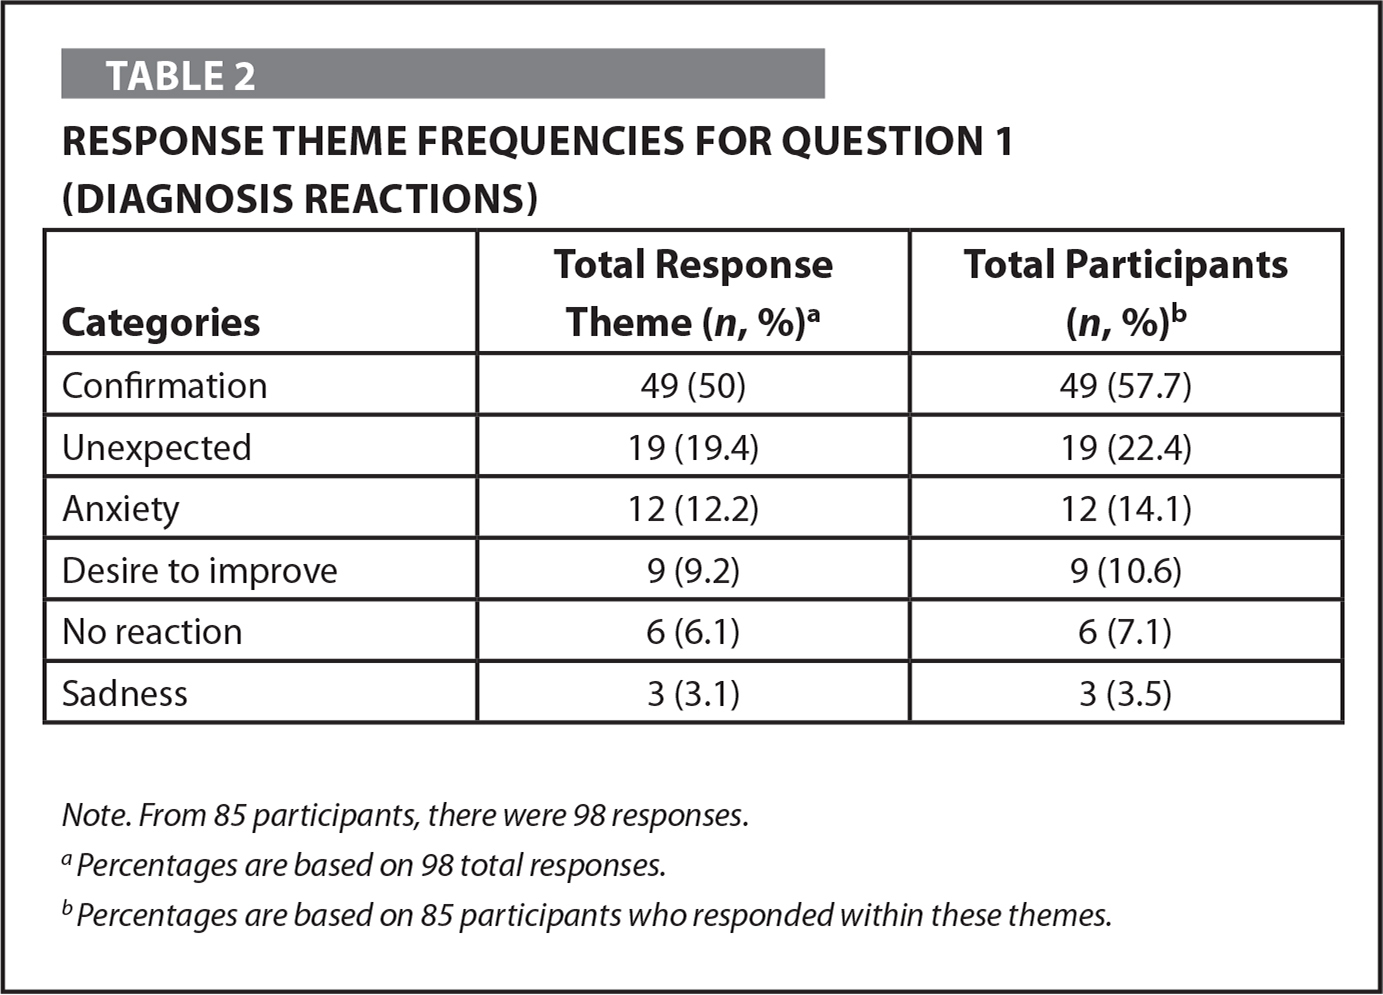 Response Theme Frequencies for Question 1 (Diagnosis Reactions)